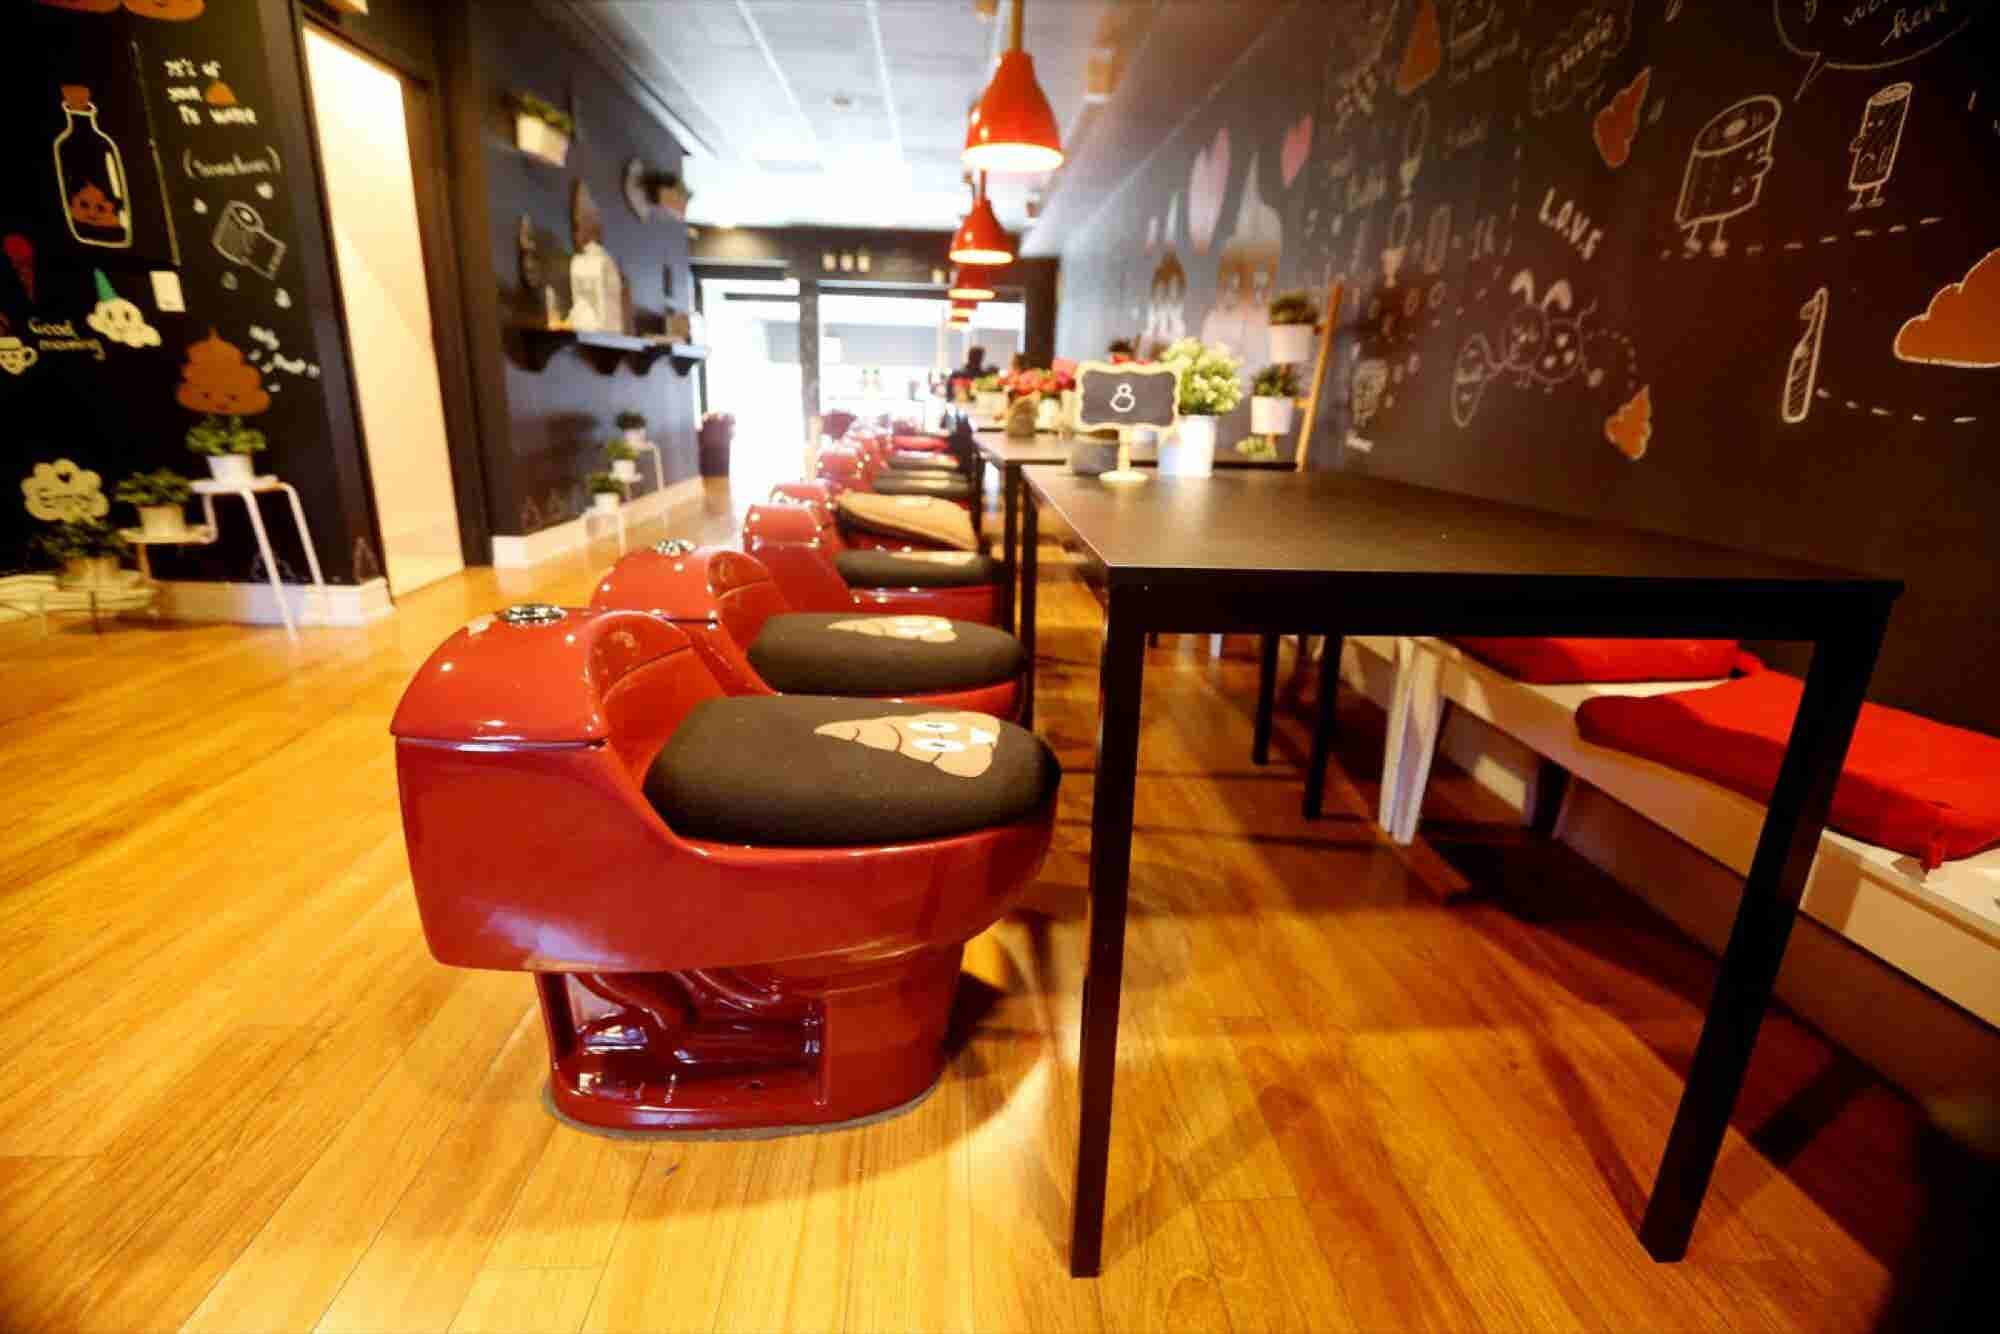 Follow These 6 Steps to Open Your Own Crazy Themed Cafe